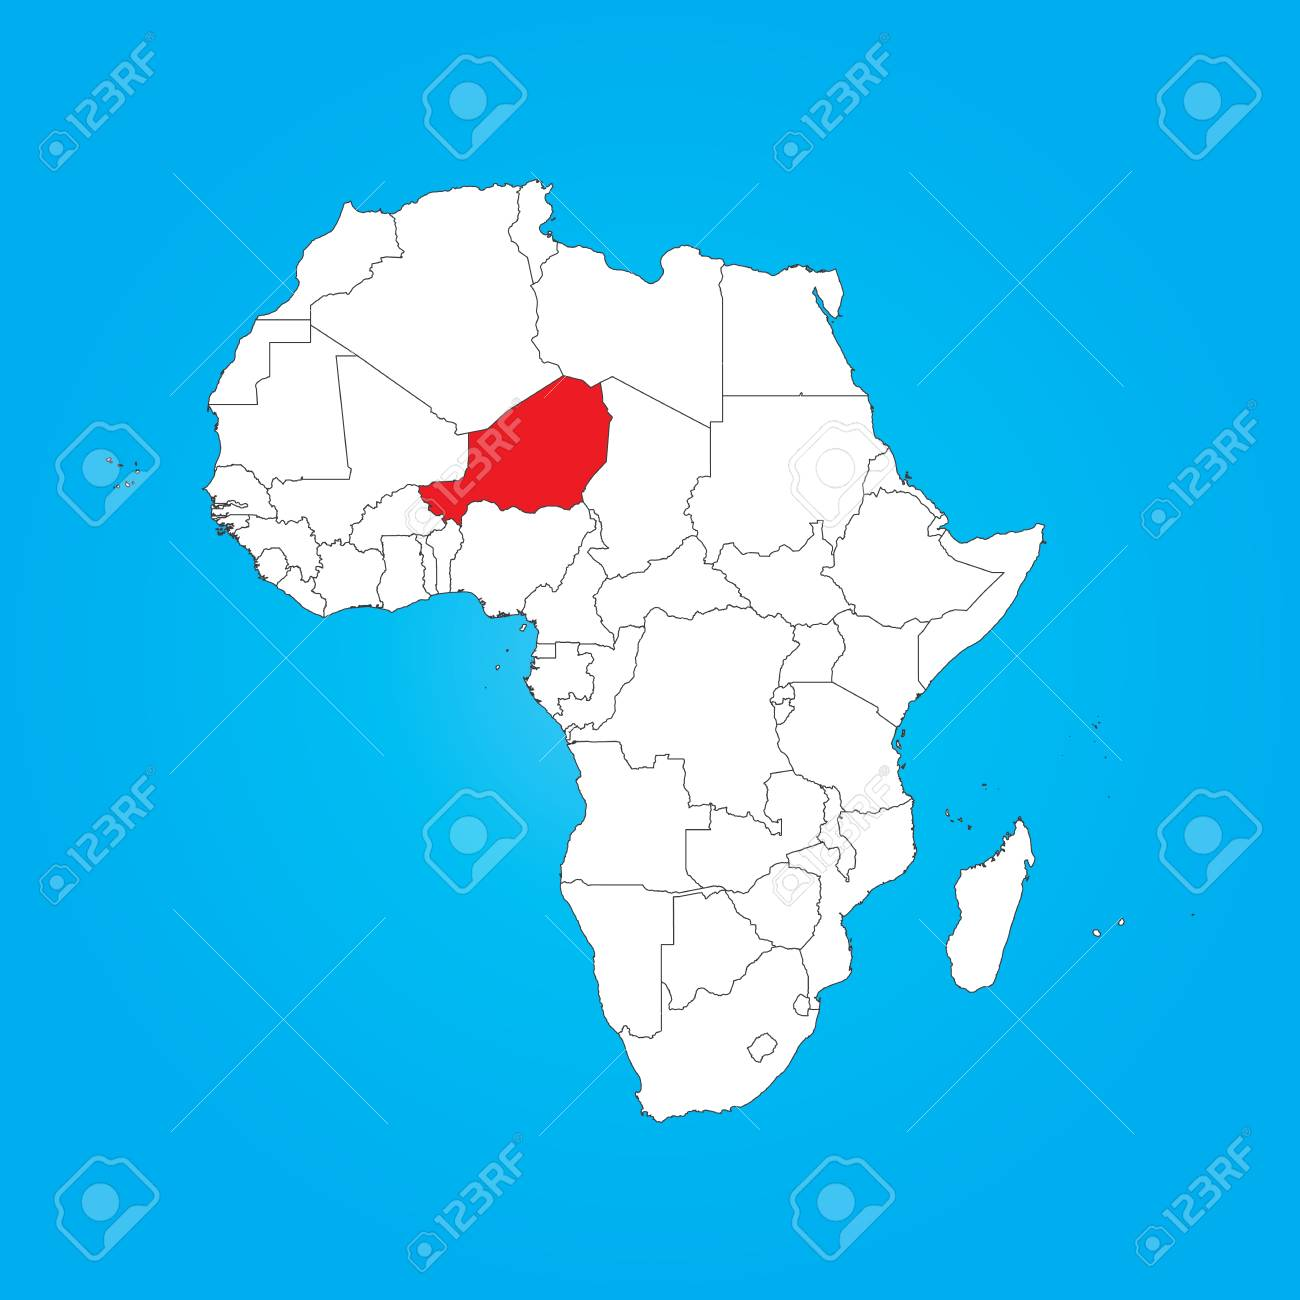 A Map Of Africa With A Selected Country Of Niger Stock Photo